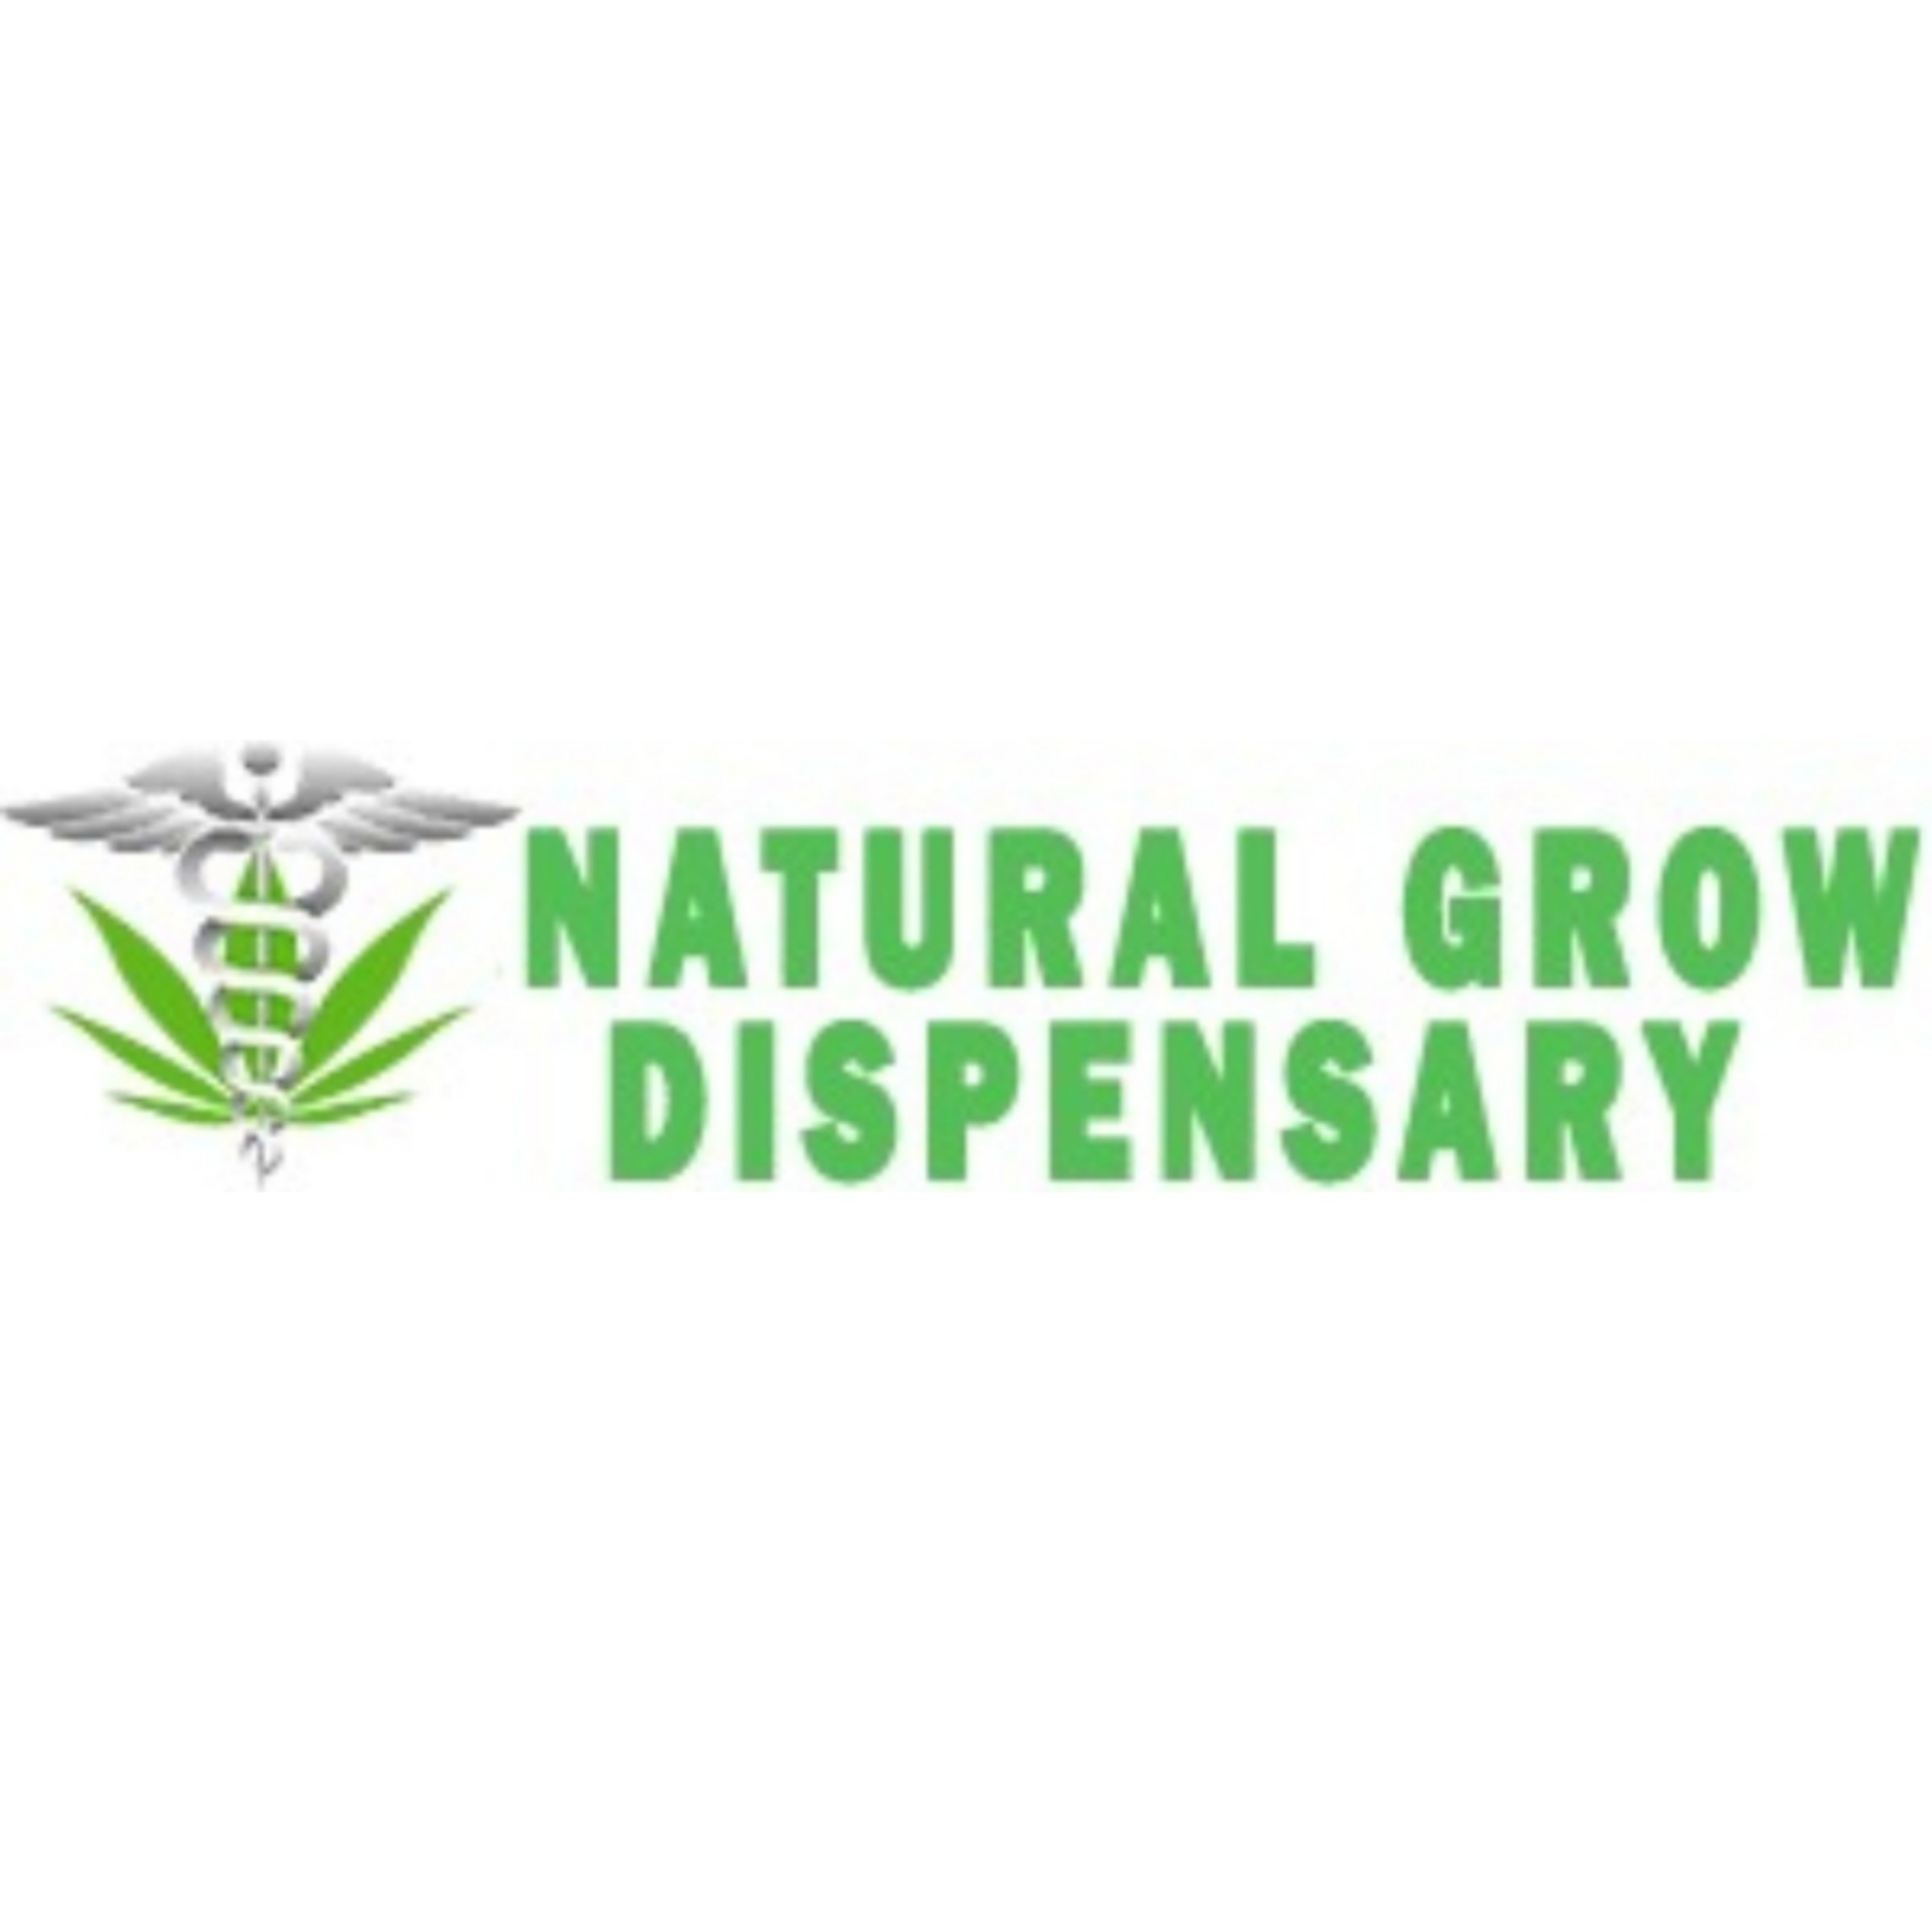 Natural Grow Dispensary